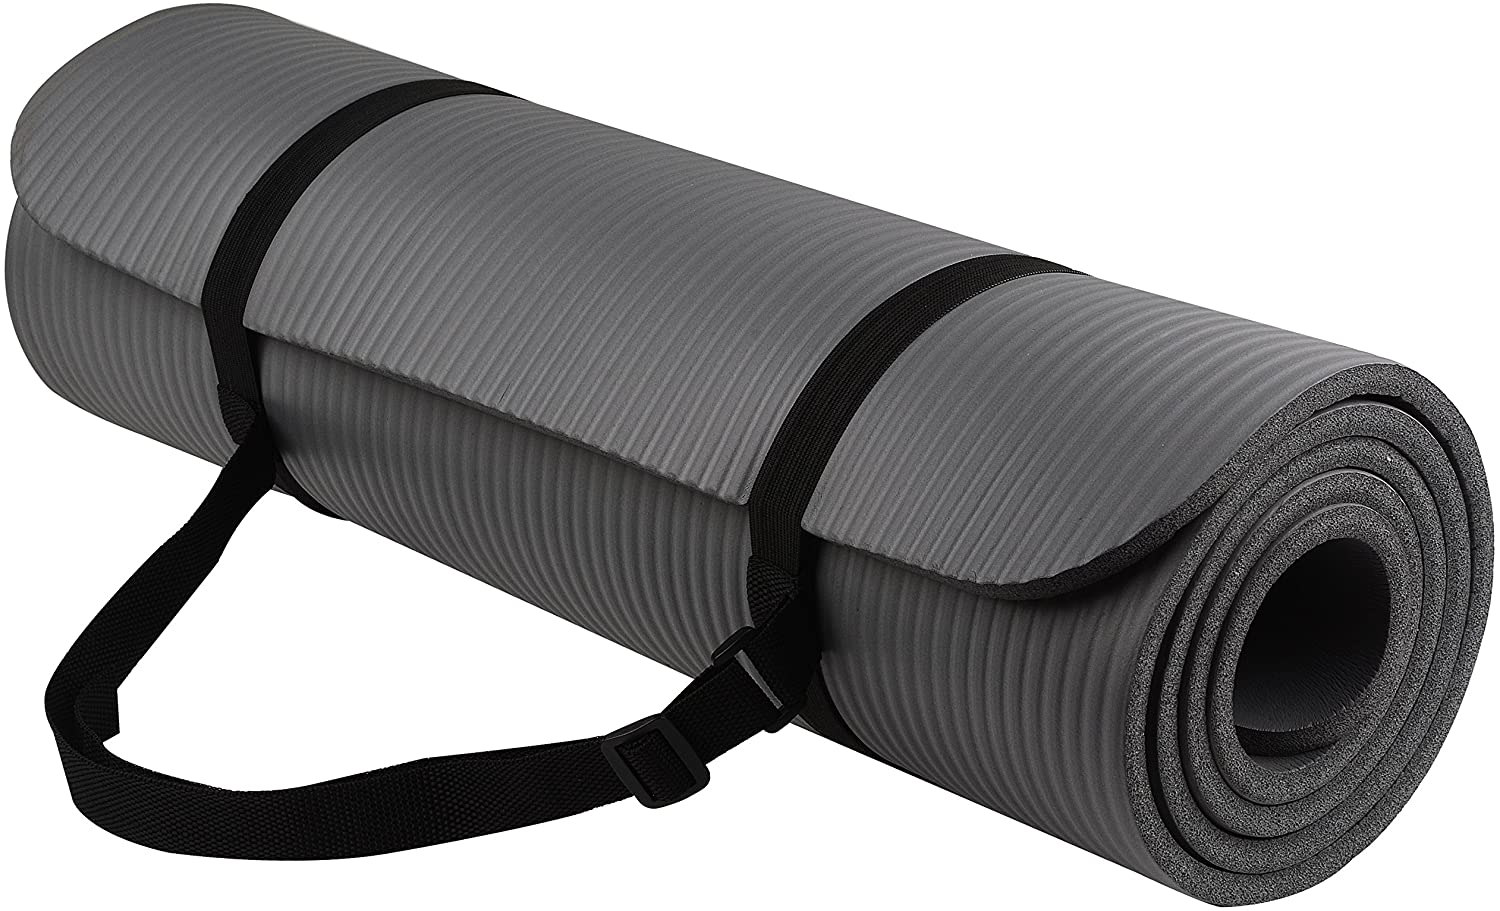 All-Purpose 1/2-Inch Extra Thick High Density Anti-Tear Exercise Yoga Mat with Carrying Strap